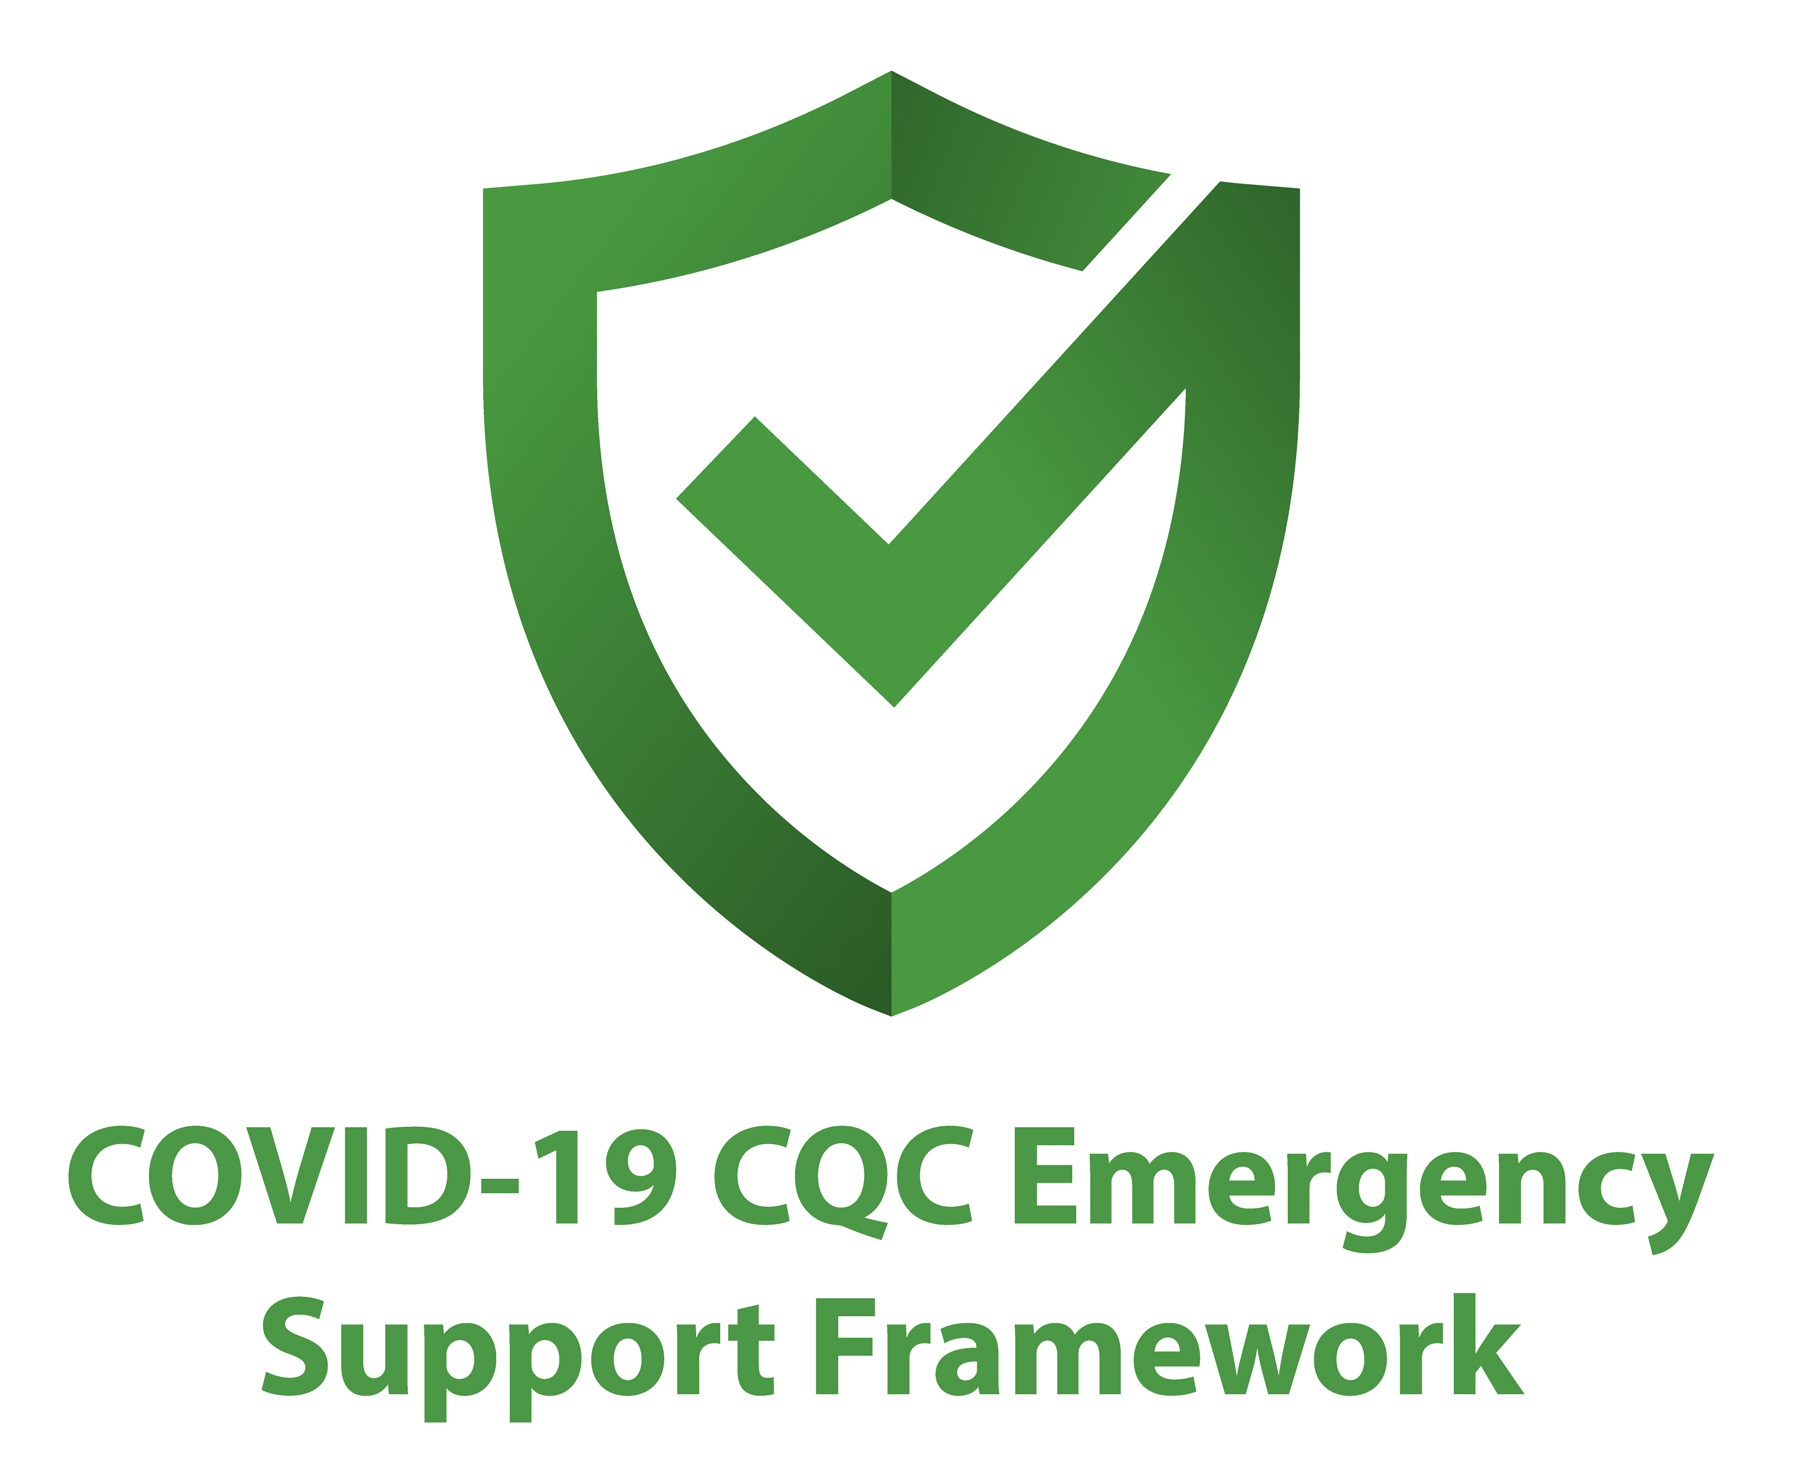 Emergancy support framework logo COVID